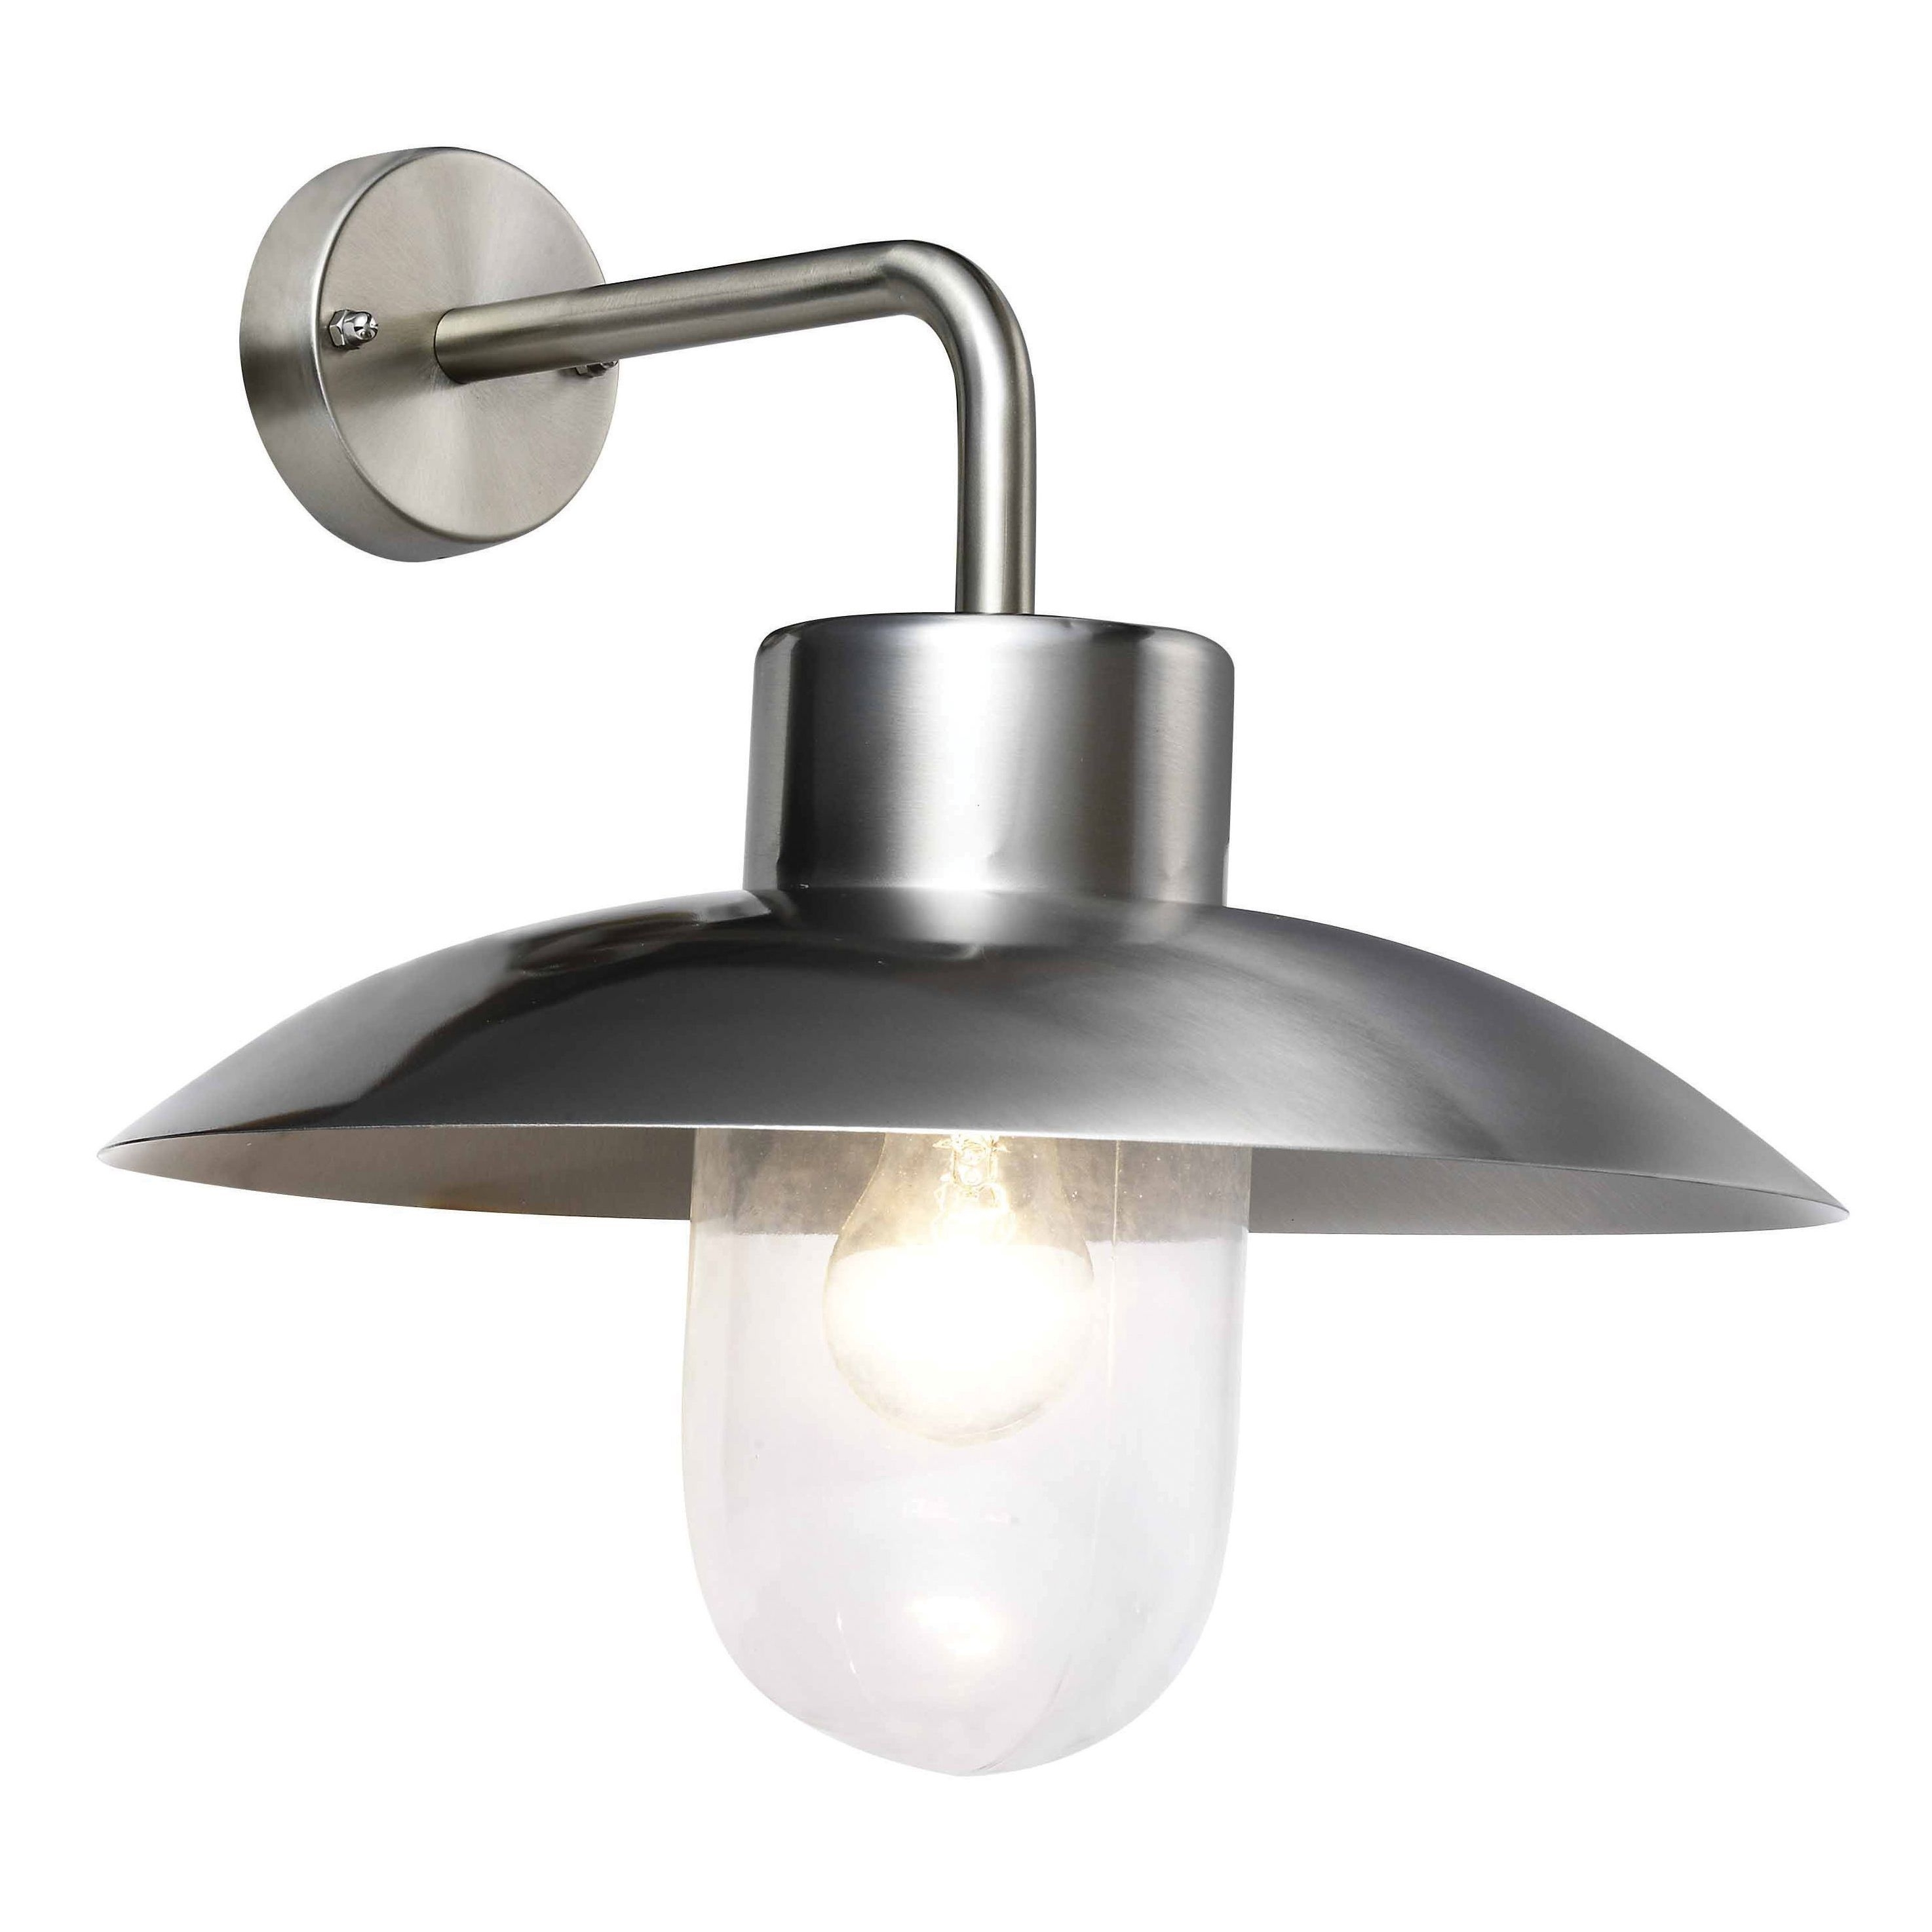 Blooma Mara External Wall Light | Departments | Diy At B&q £20 For Outdoor Ceiling Lights At B&q (#4 of 15)